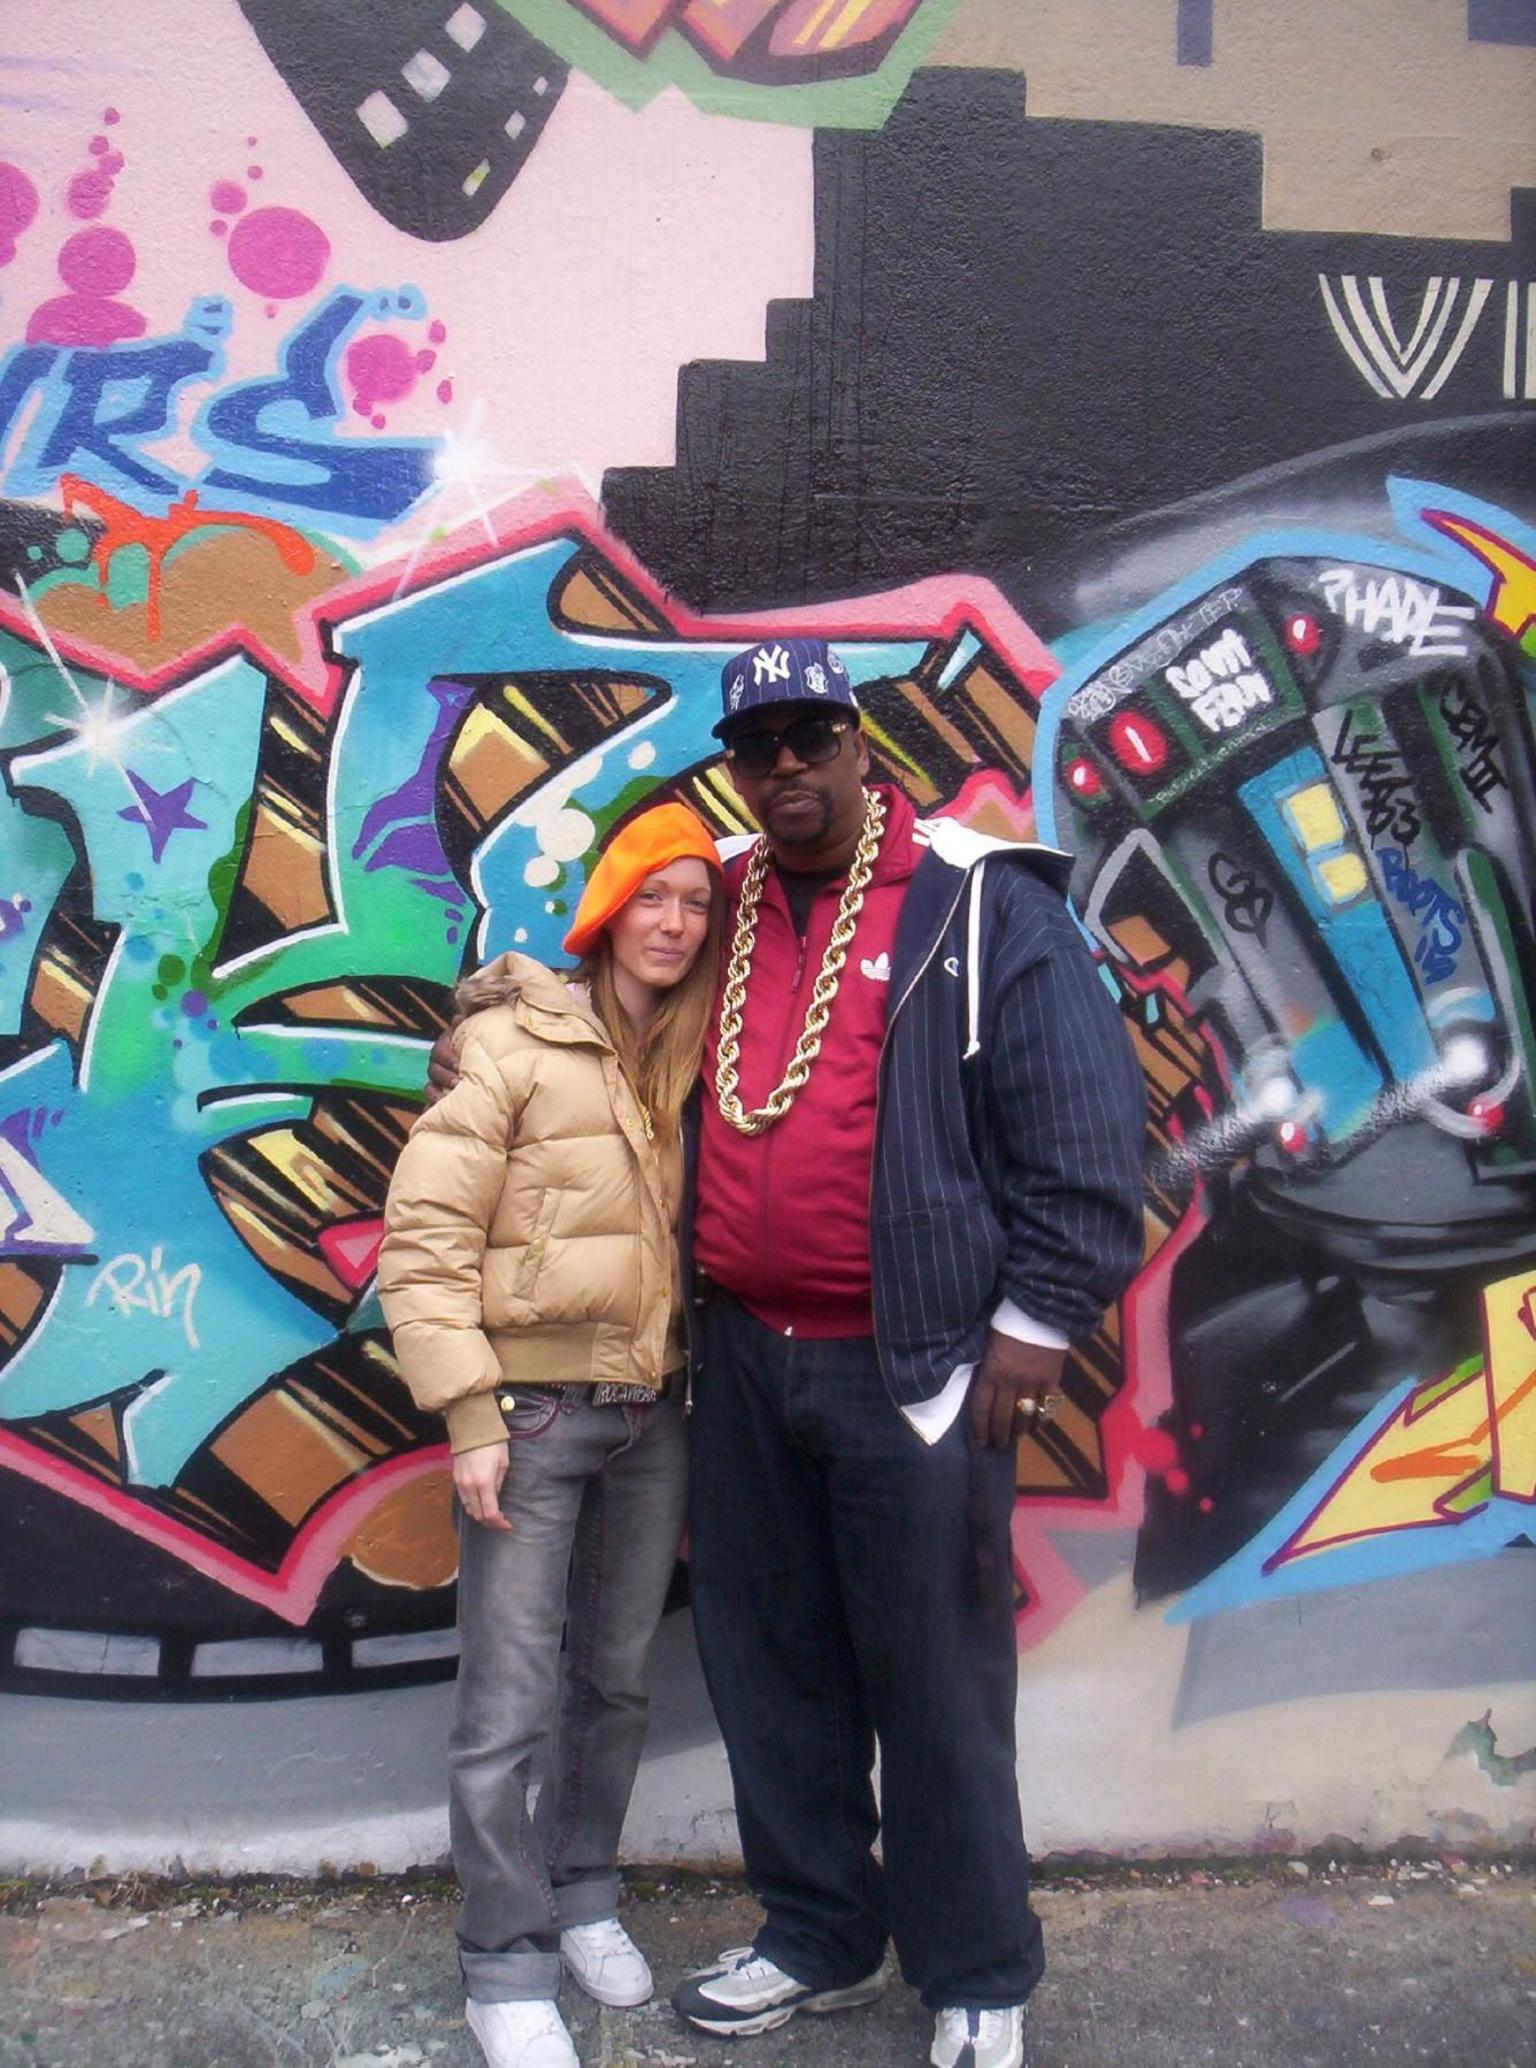 Me and Grand Master Caz